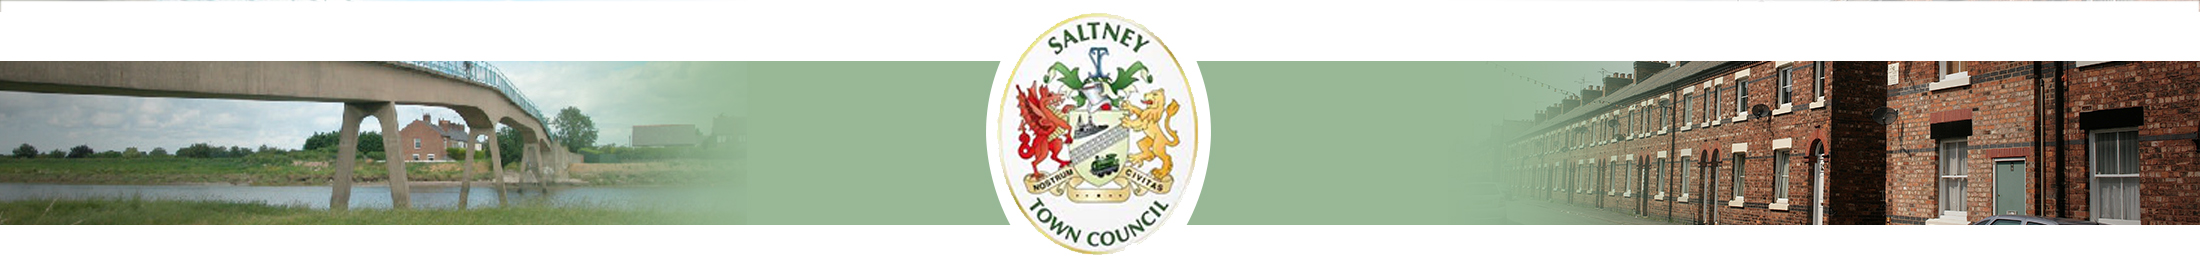 Header Image for Saltney Town Council